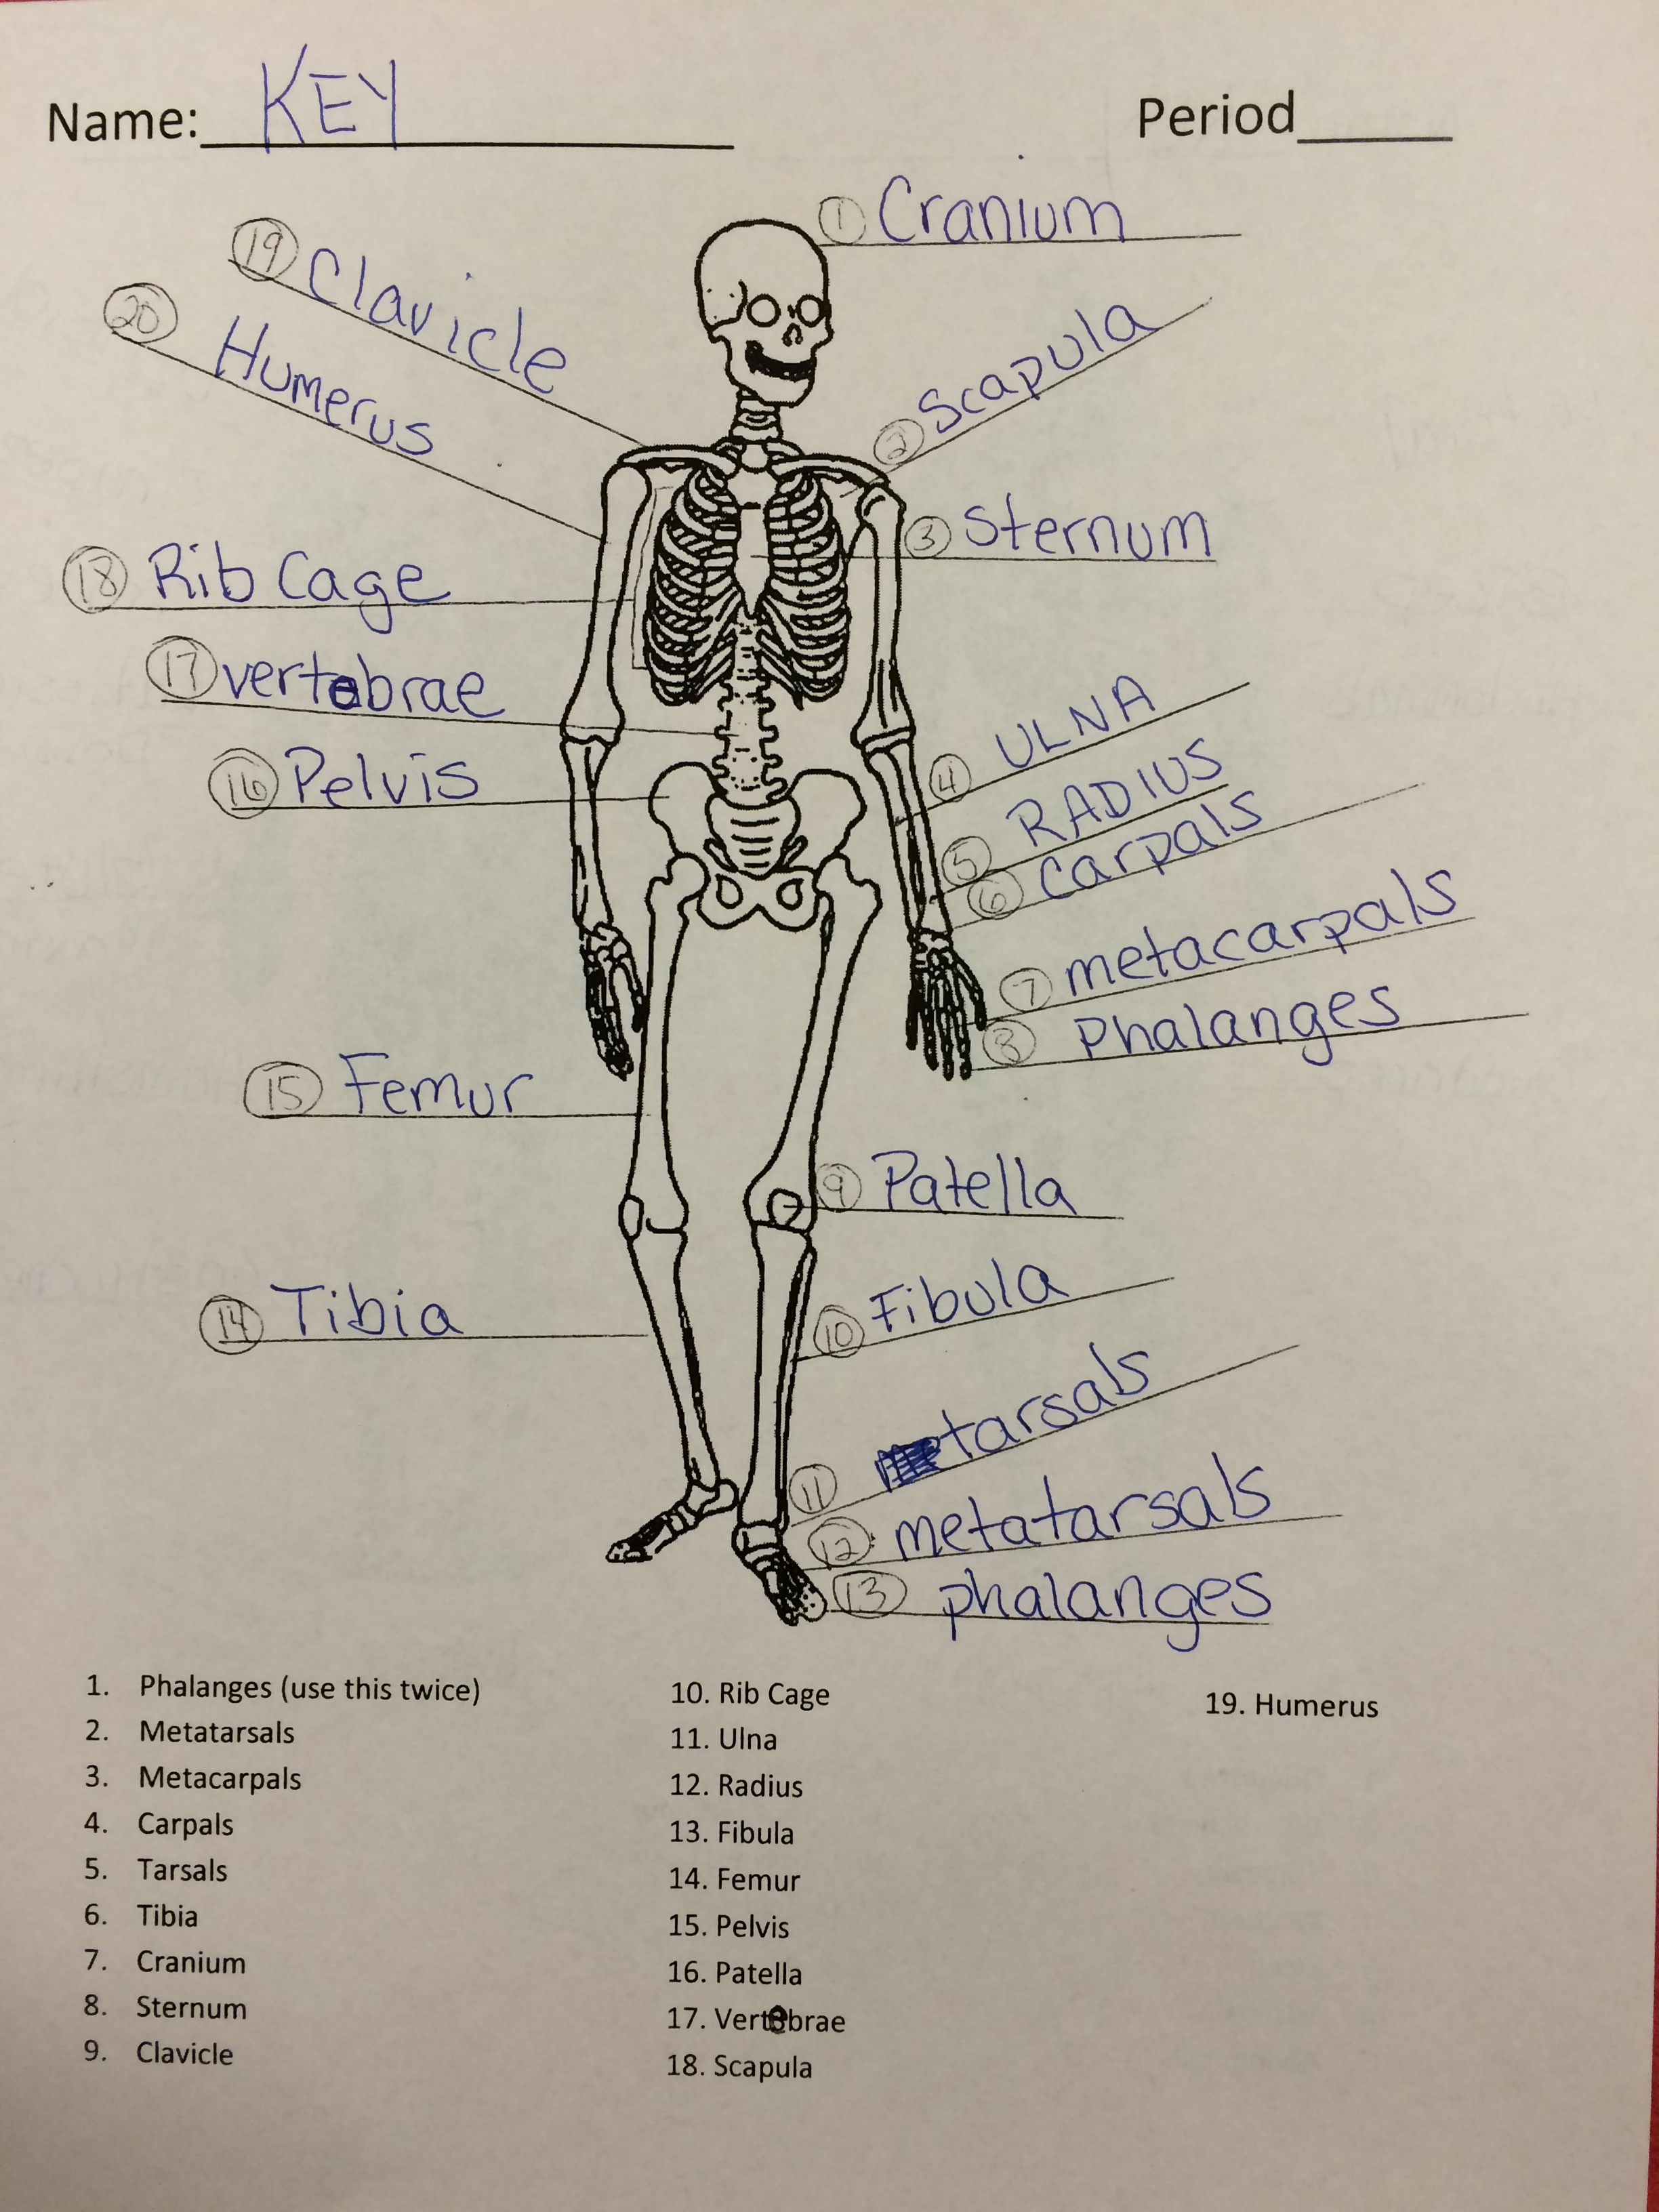 7th Grade Health Ms PryorIndian Valley Middle School – Skeletal System Worksheet Answers